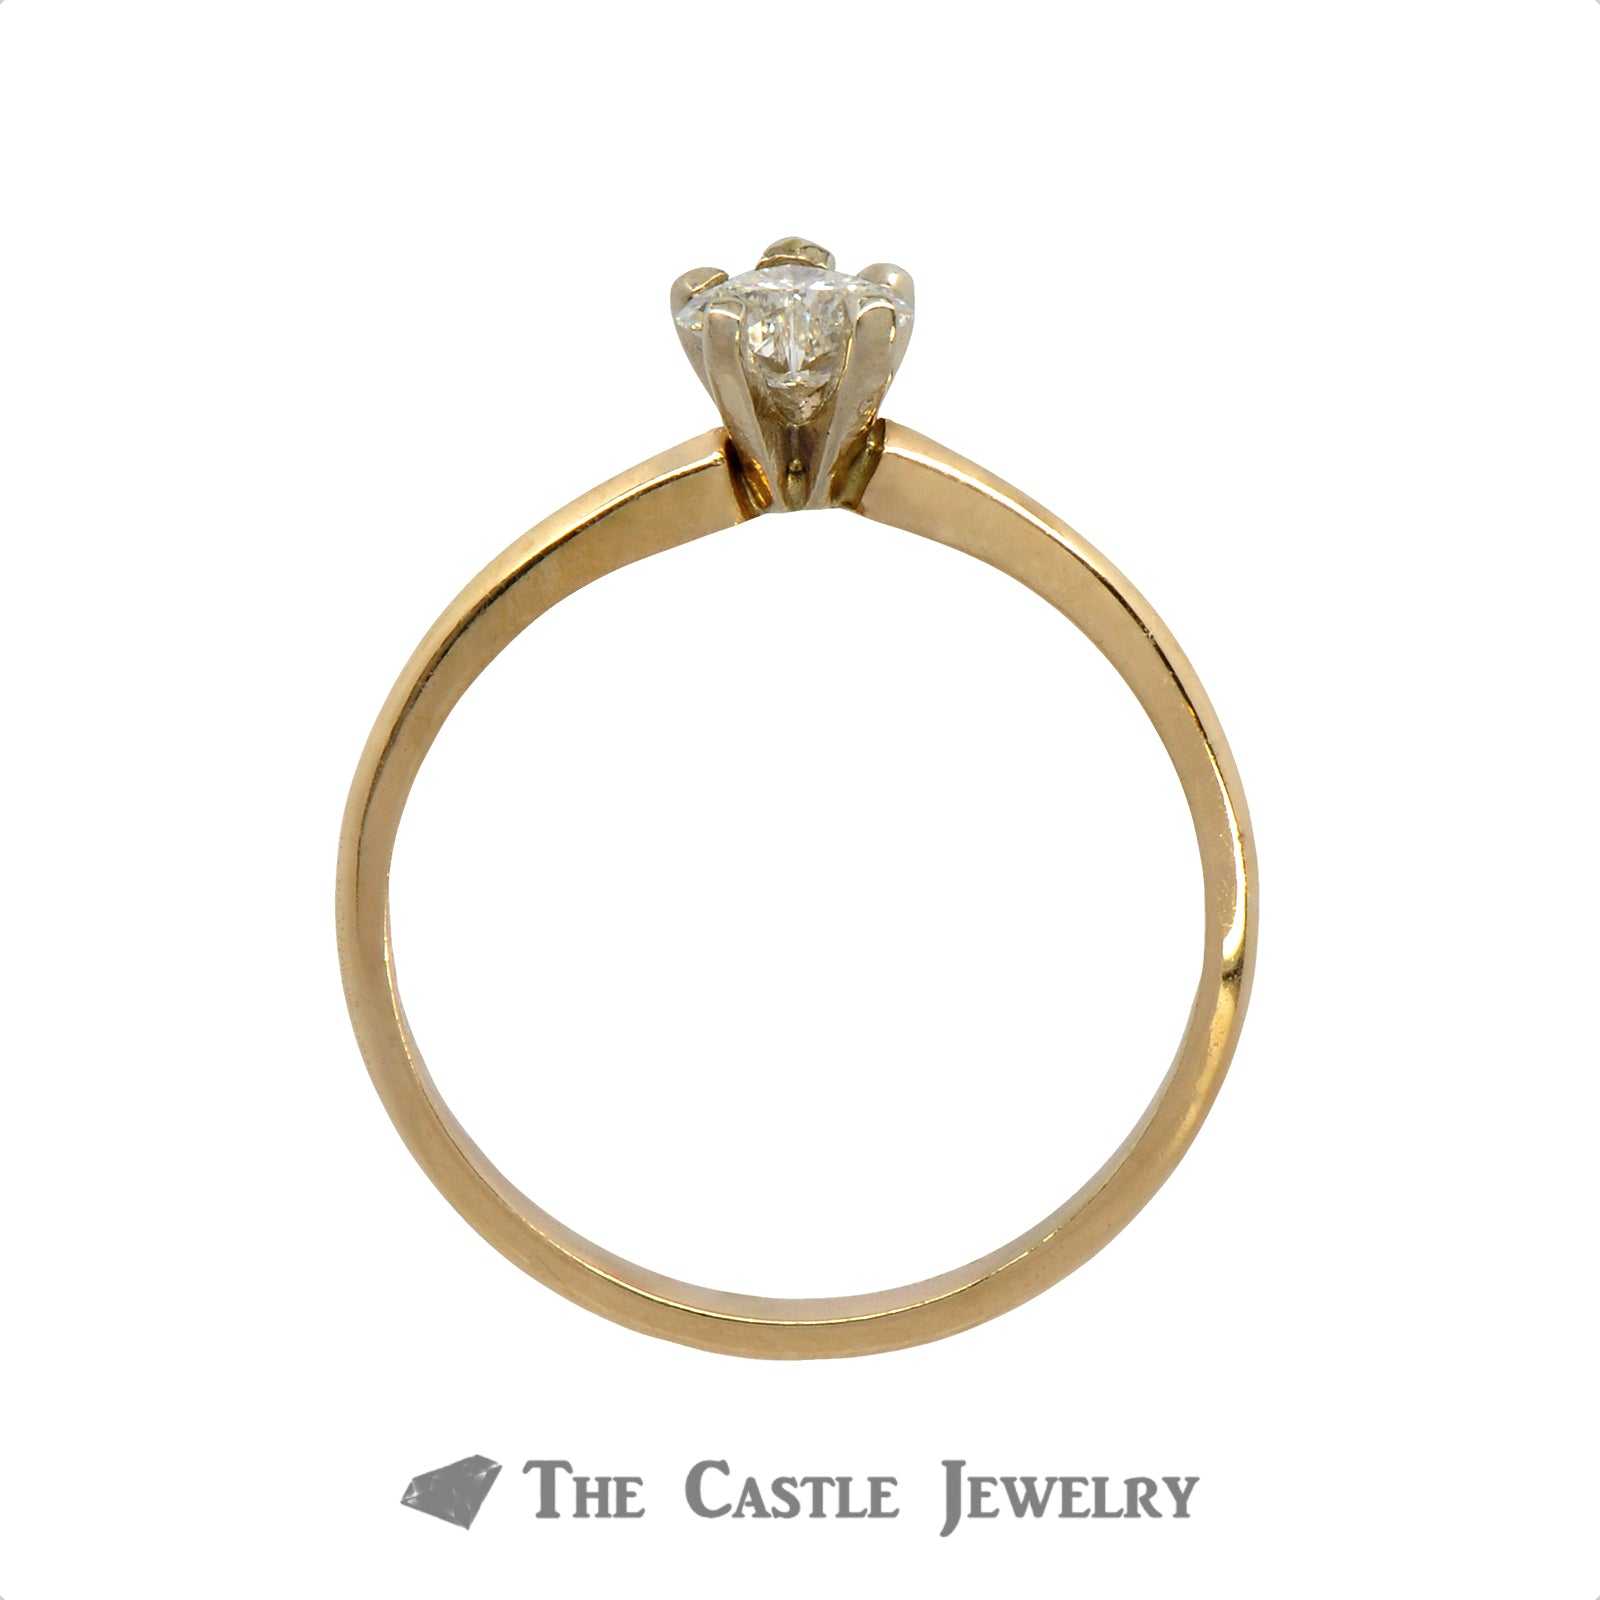 .30ct Heart Cut Diamond Solitaire Engagement Ring in 14k Yellow Gold-1